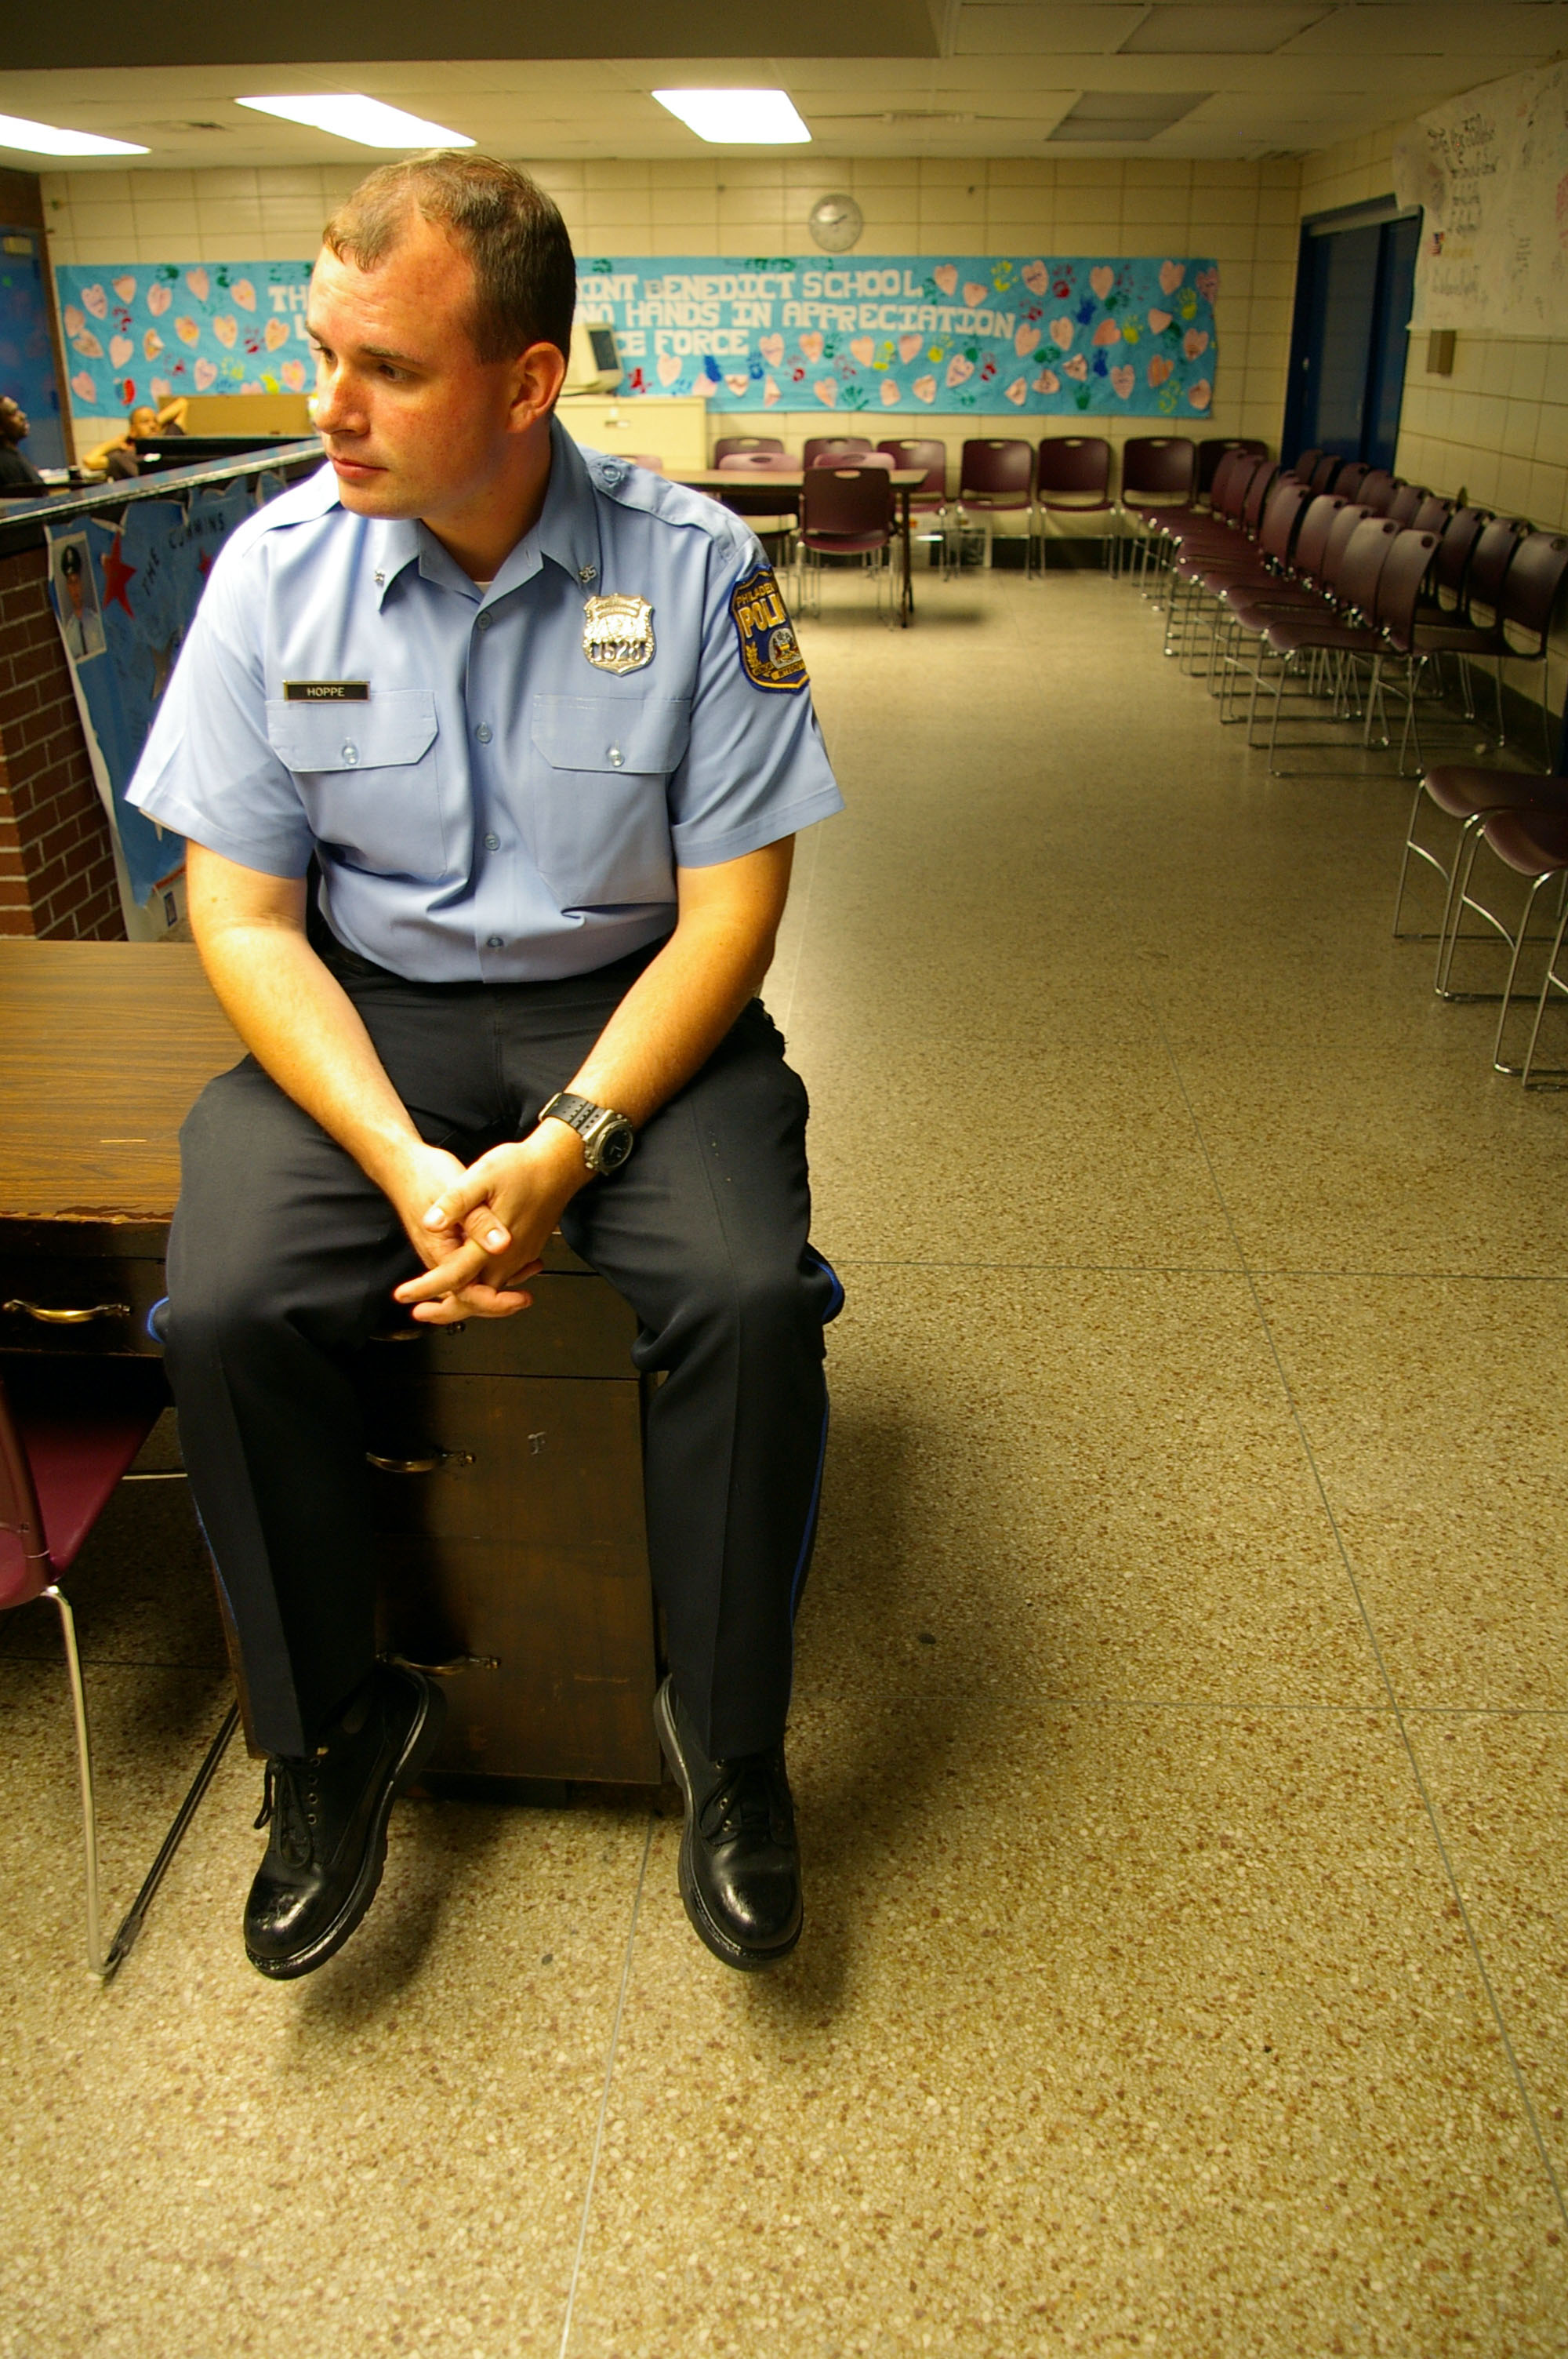 Officer Hoppe has been with the 35th District for two and a half years.